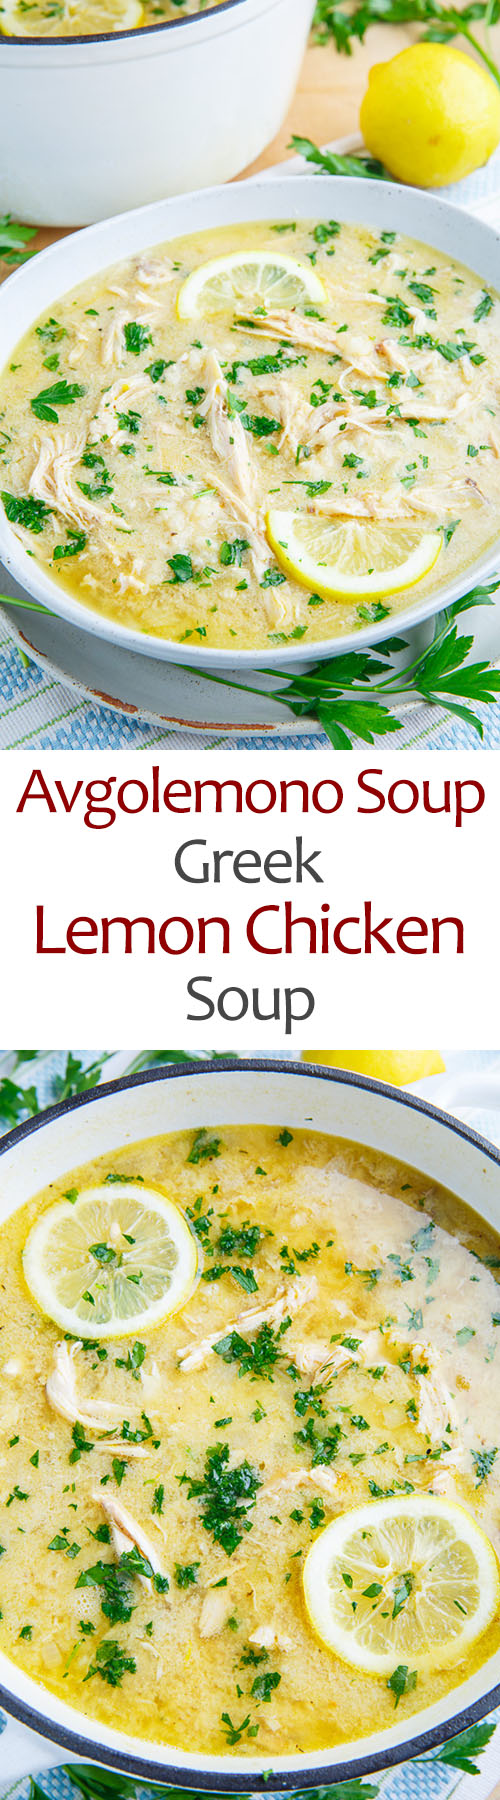 Avgolemono Soup (aka Greek Lemon Chicken Soup)